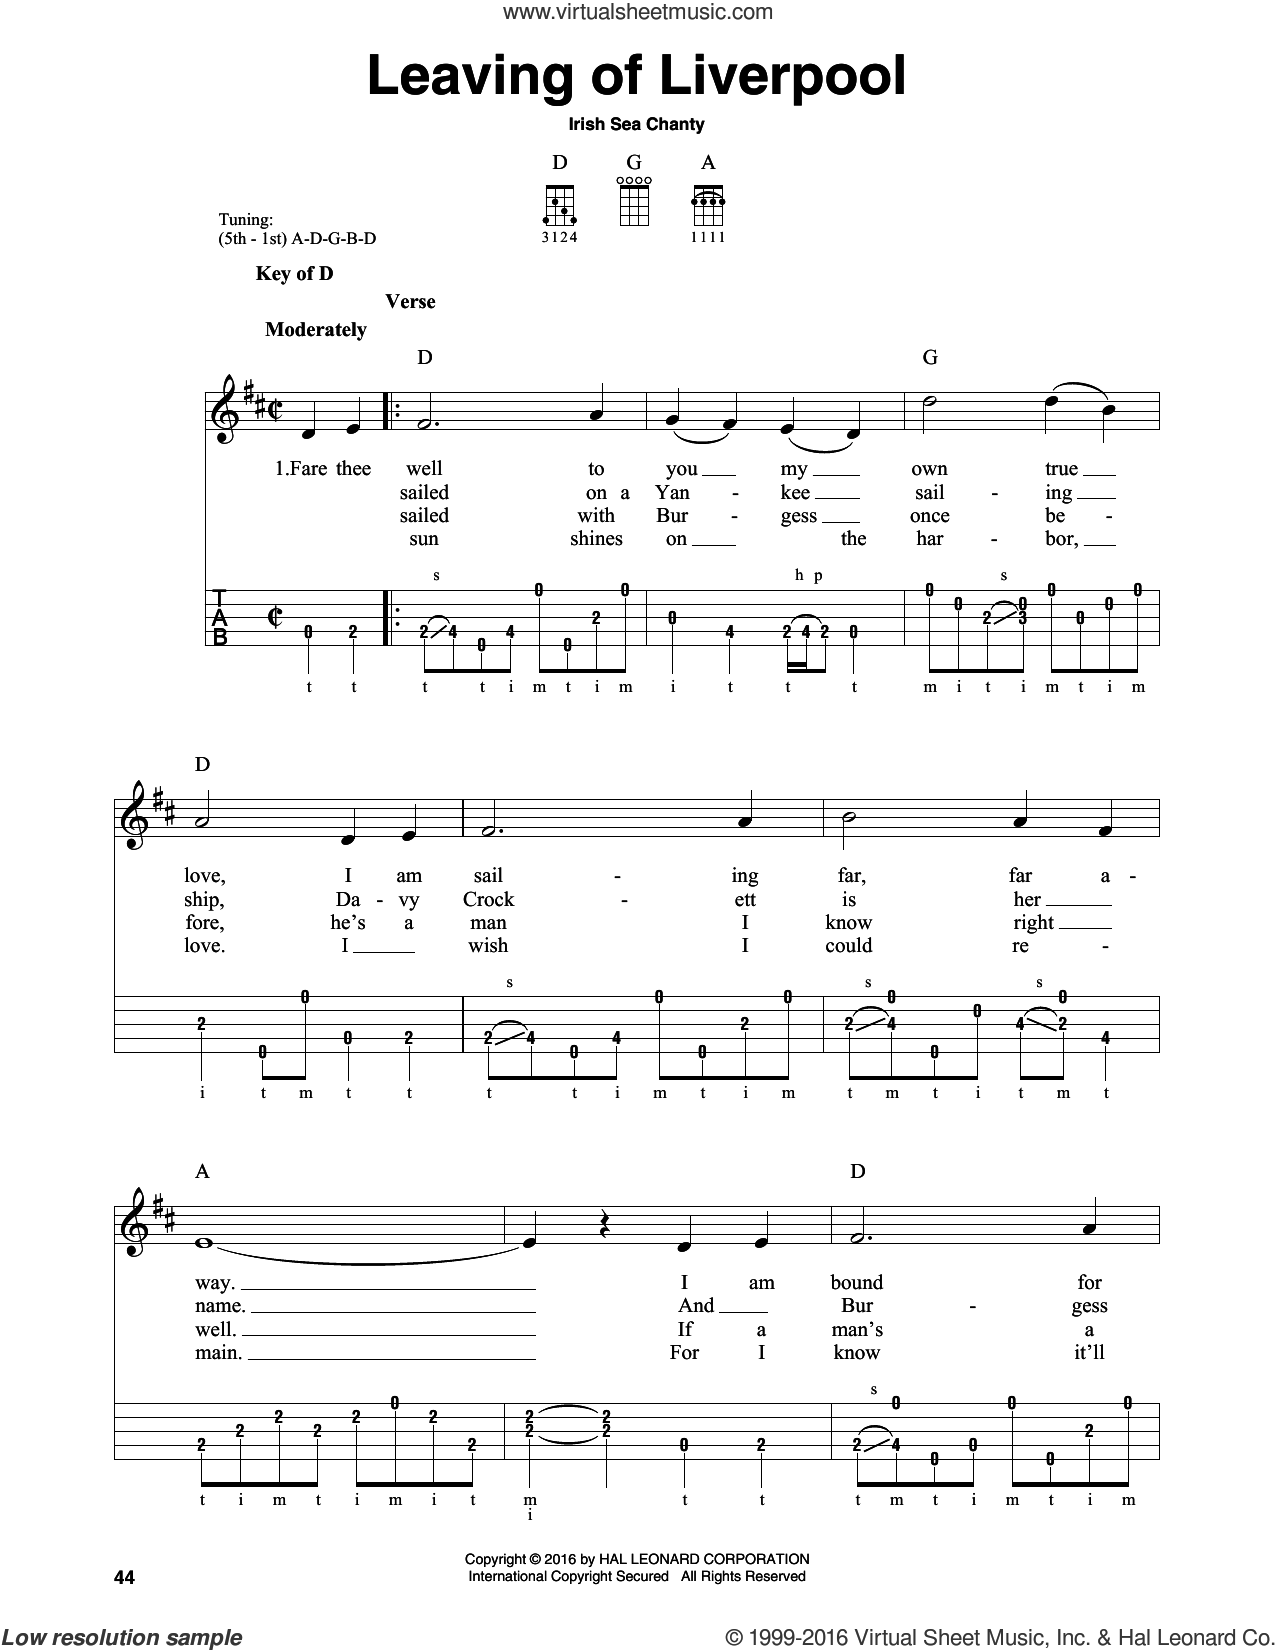 Leaving Of Liverpool sheet music for banjo solo by Irish Sea Chanty, intermediate skill level